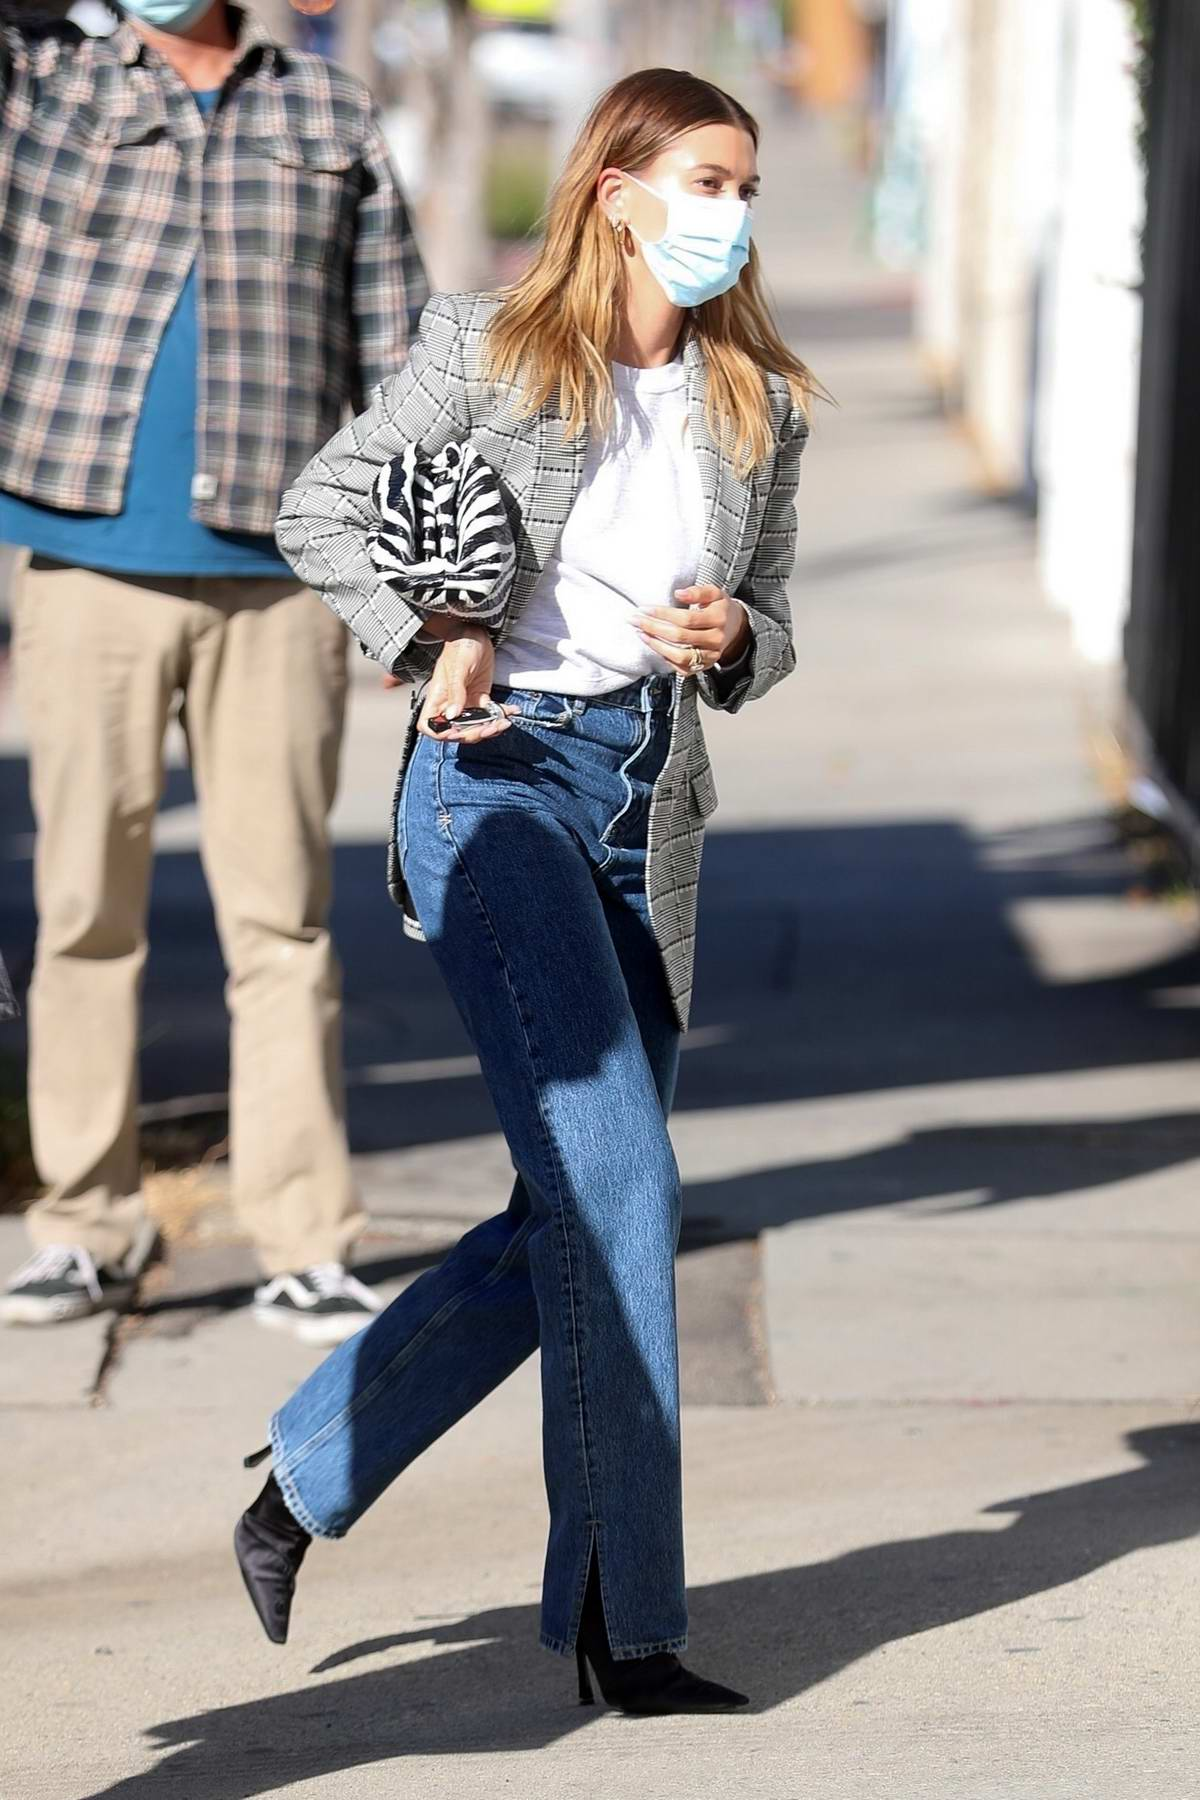 Hailey Bieber seen wearing a grey blazer and jeans as she arrives at a film set in West Hollywood, California